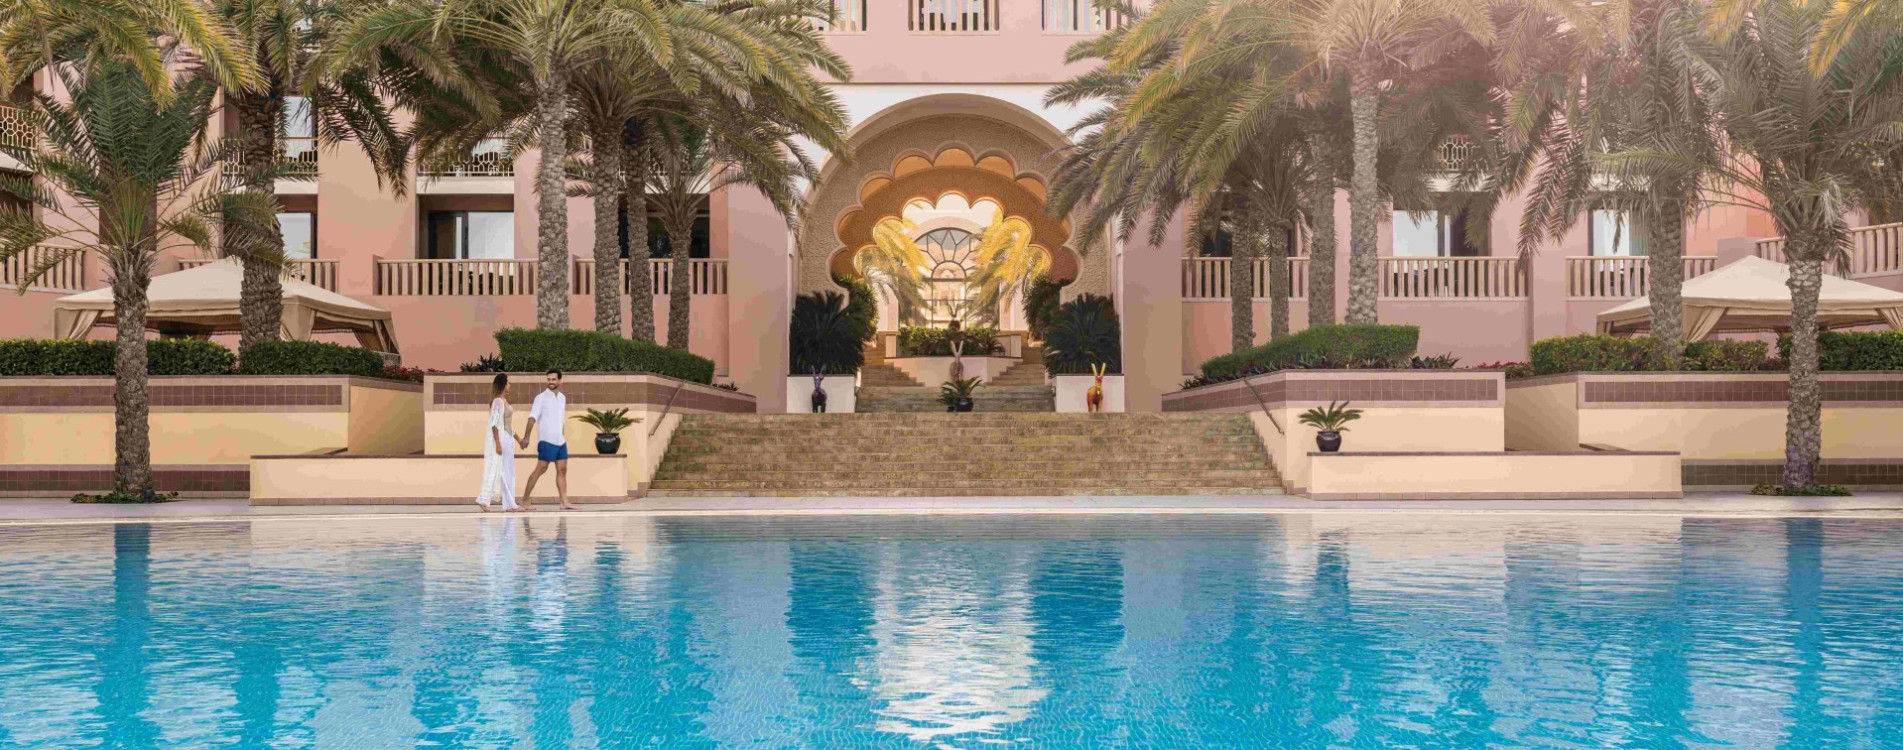 Shangri-La-Al-Husn-Resort-and-Spa-Hotelpool-Fassade-Oman.jpg